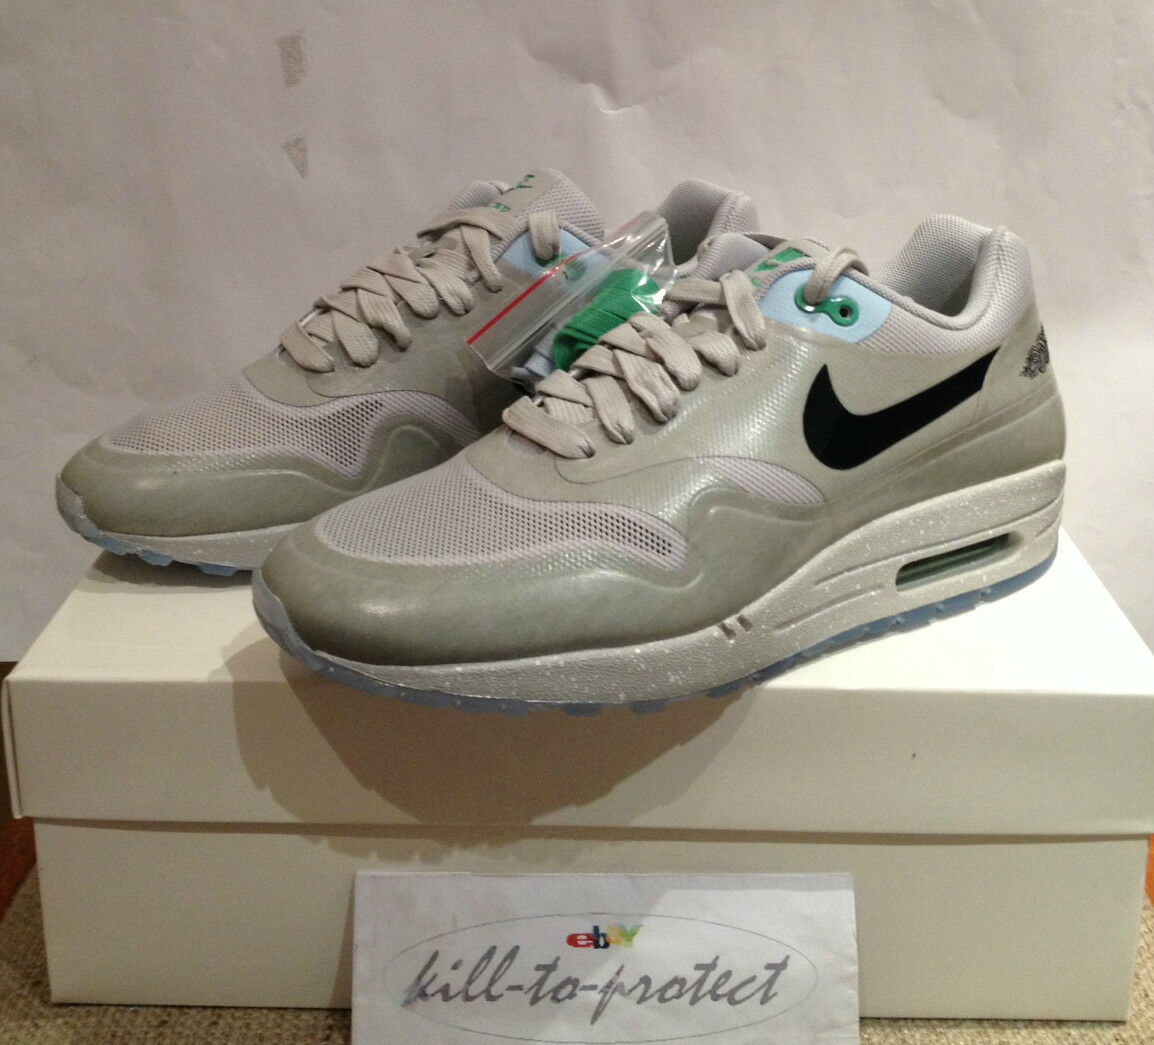 NIKE AIR MAX 1 ONE SP CLOT US UK5 6 7 8 9 10 11 12 Kiss Of Death 636462-043 2013